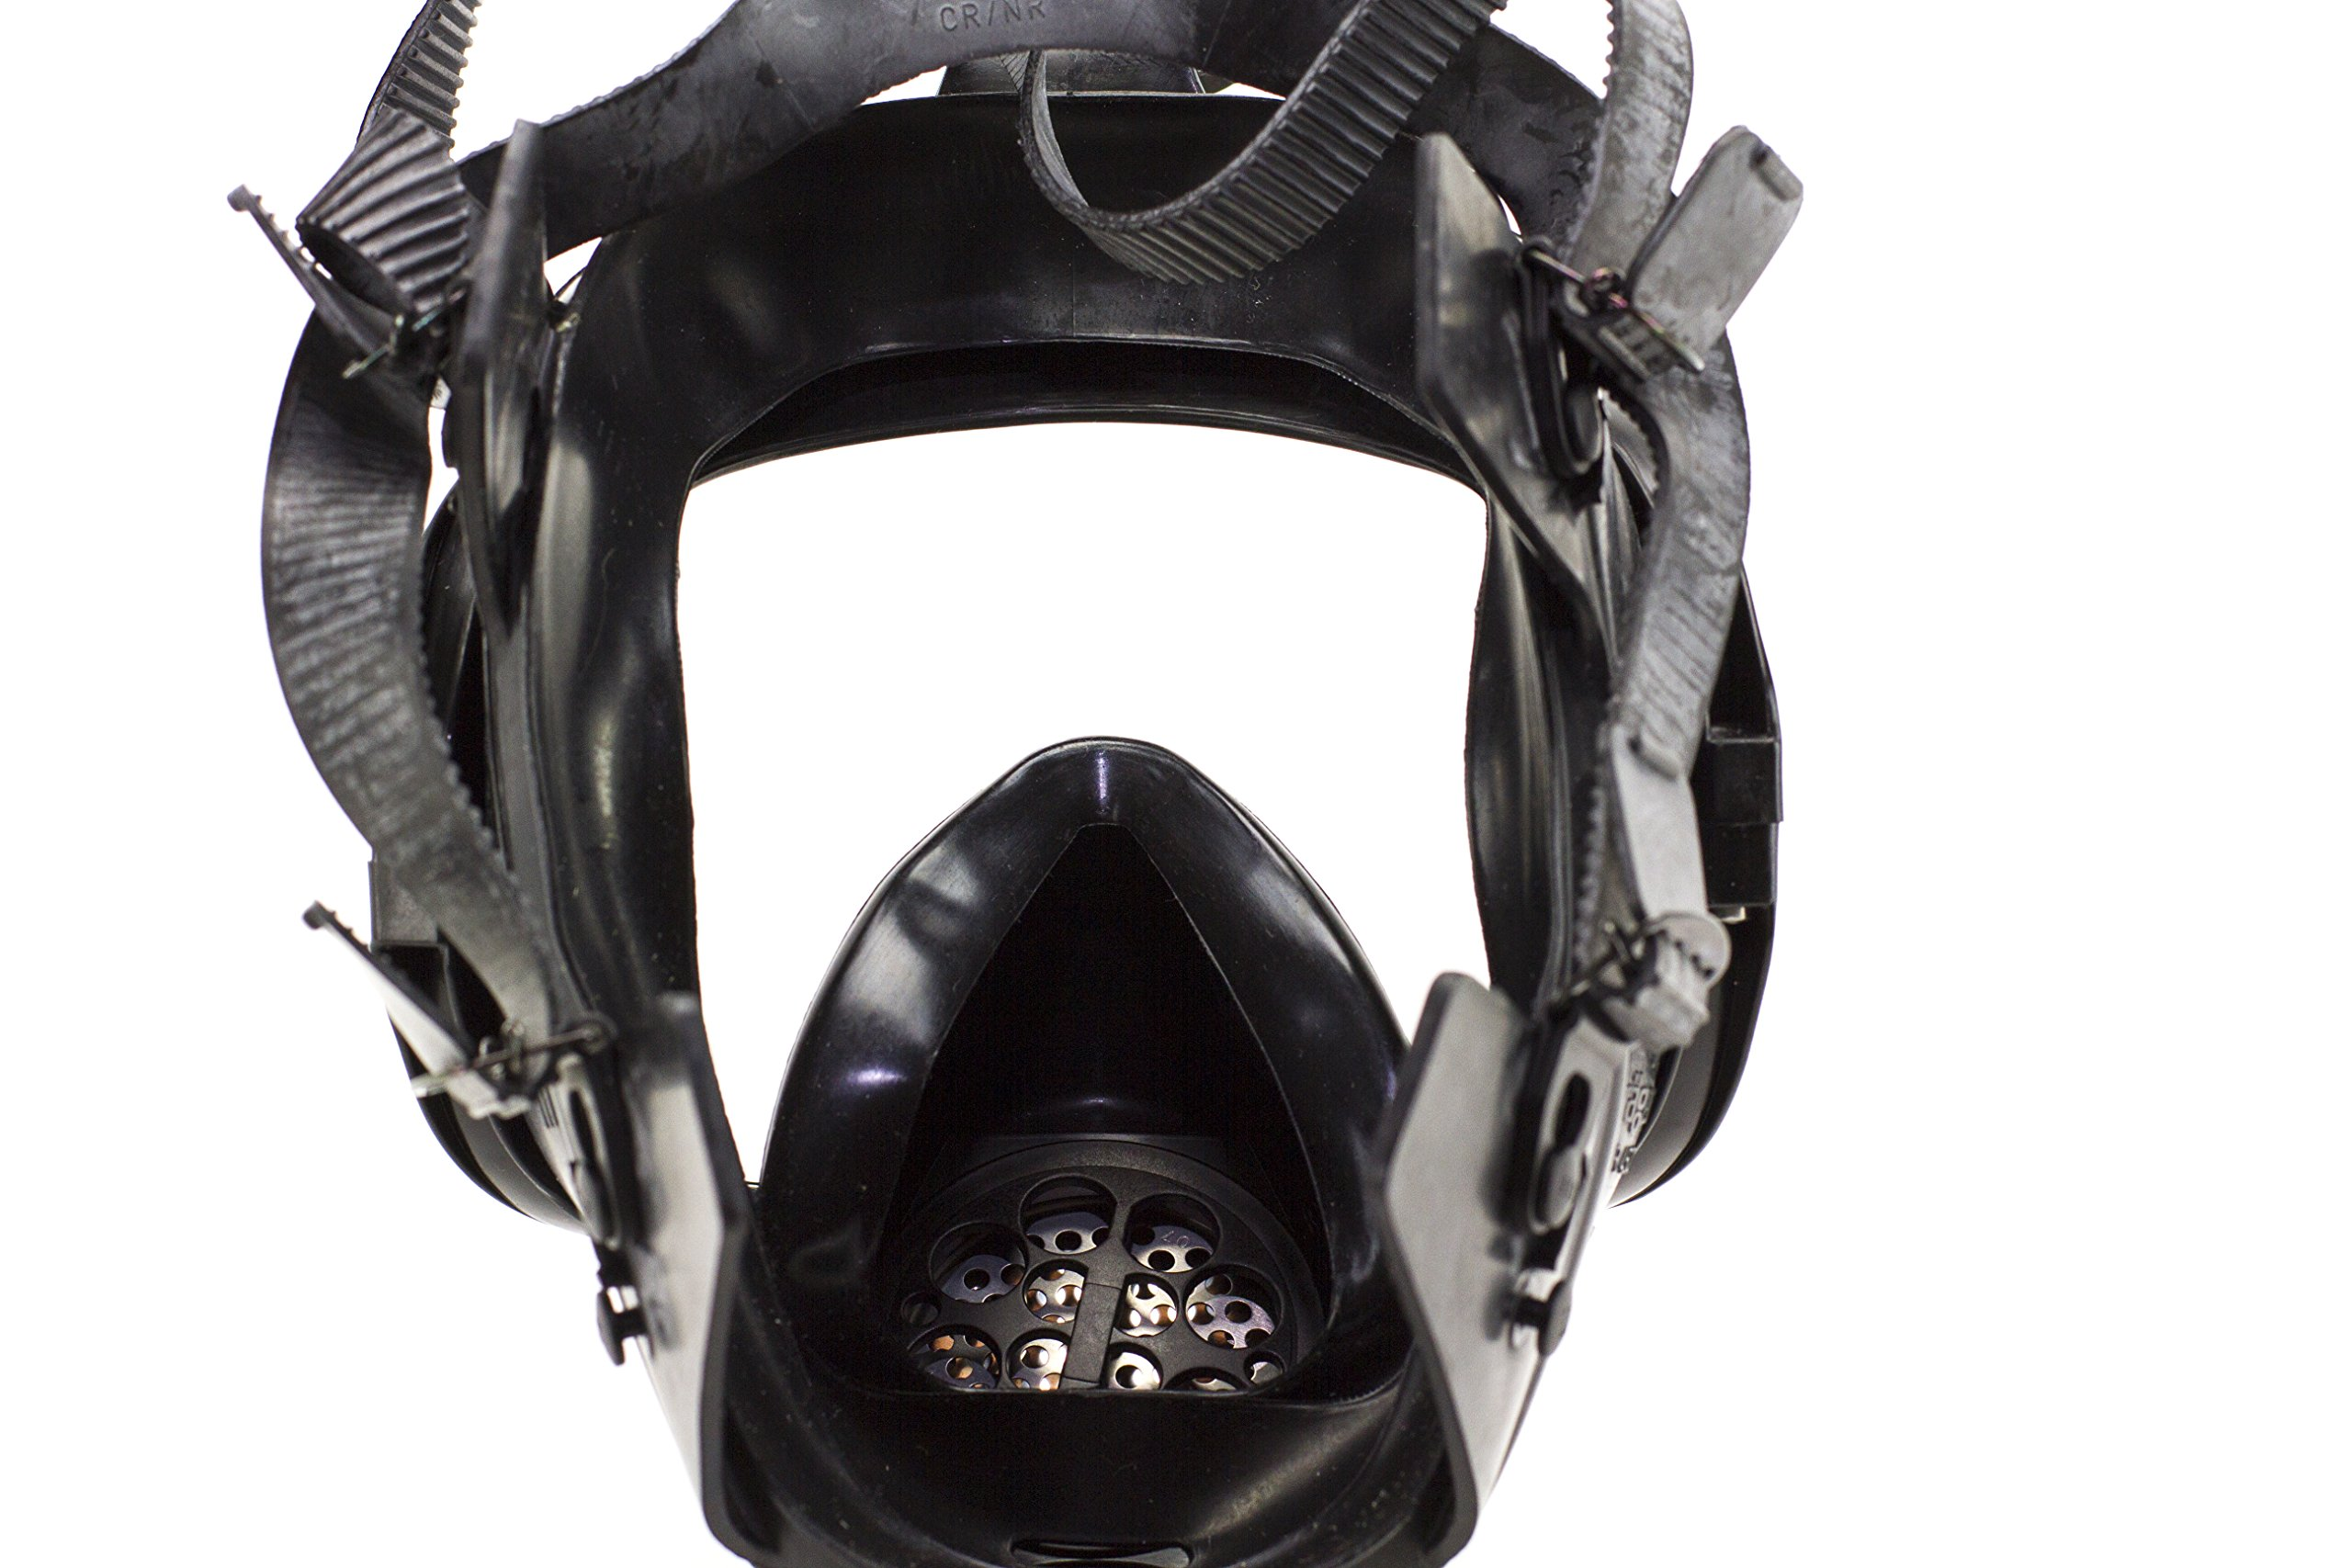 NBC for KIDS Nuclear Biological Chemical Protection System Israeli NATO Military Gas Mask